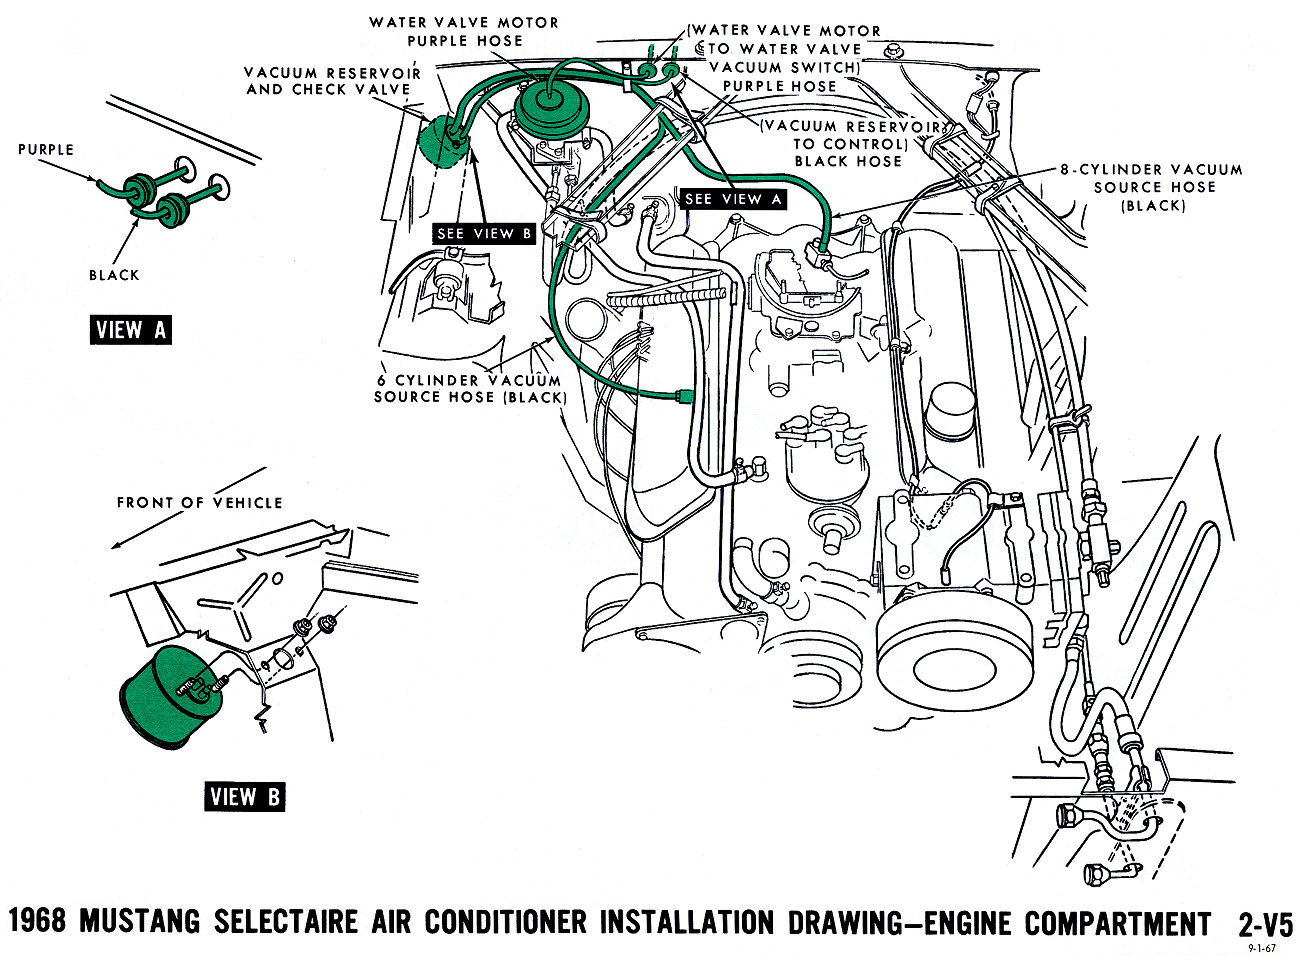 1968 Mustang Vacuum Diagrams on 1965 Ford Fairlane Wiring Diagram